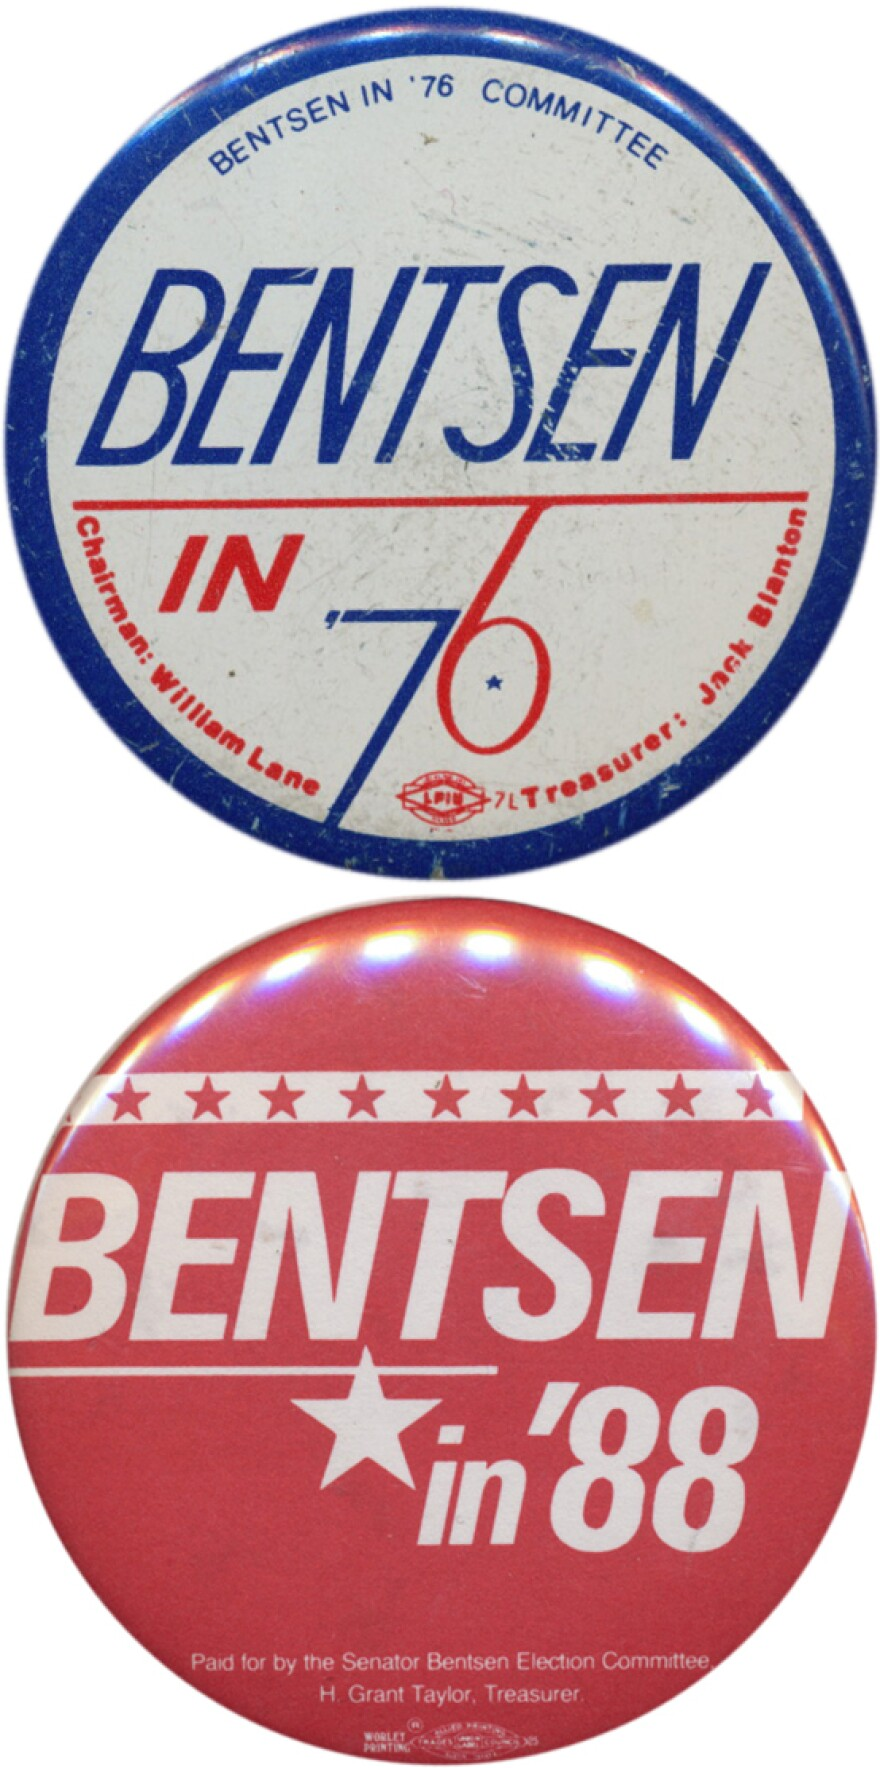 Bentsen sought national office in 1976 and 1988, even as he ran for re-election to the Senate.